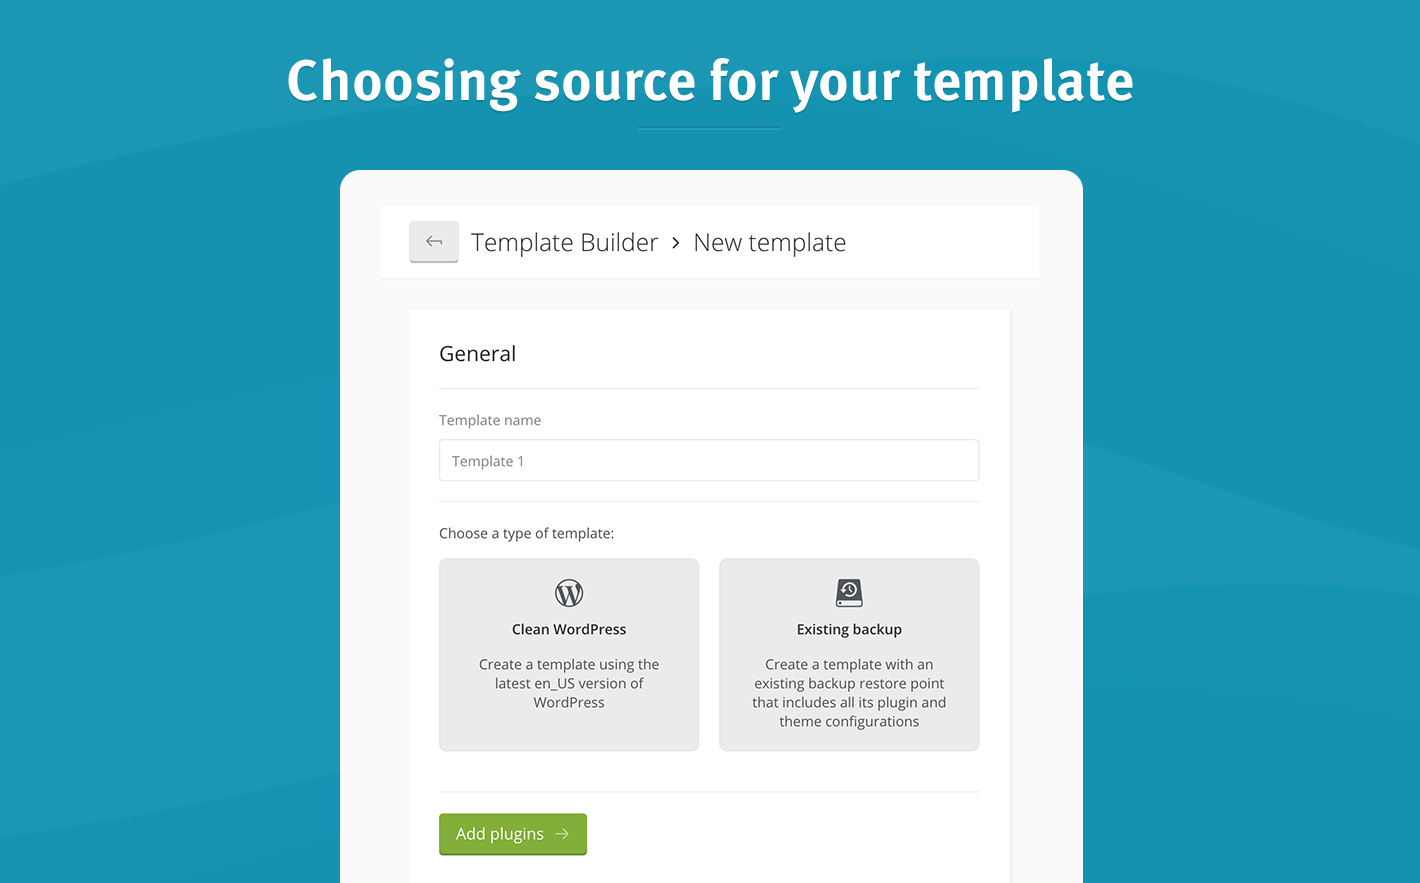 Speed up website deployment with Template Builder - ManageWP